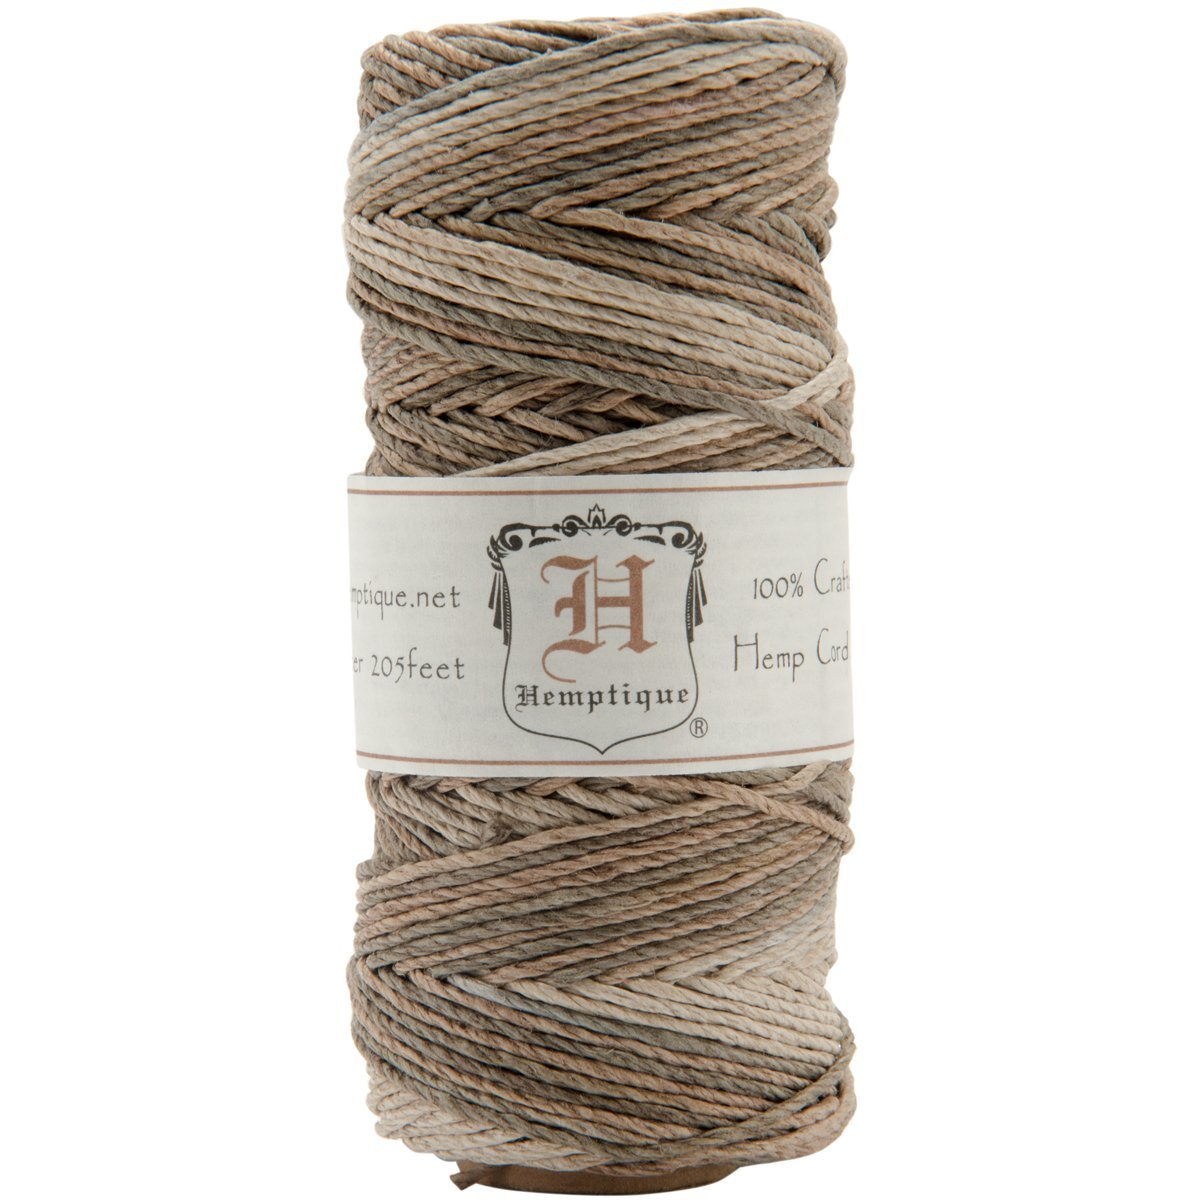 Hemptique. hs20va earthy Cord Spool 20-Pound, Earthy (Limited Edition)